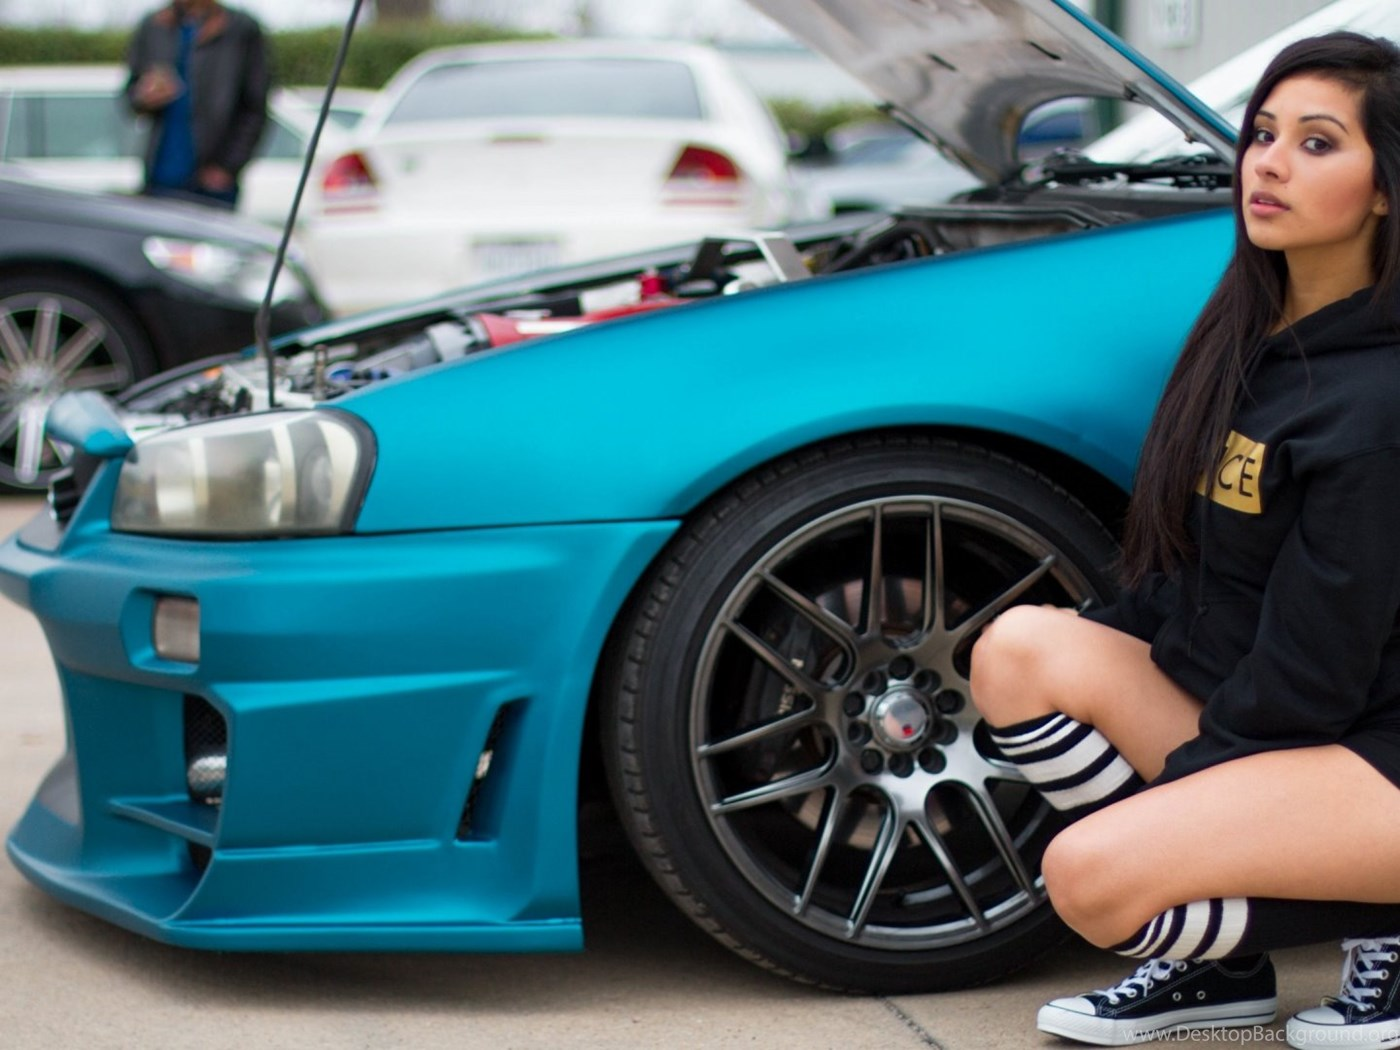 Girl Next To Blue Modified Car Hd Wallpapers For Your Pc Mac Or